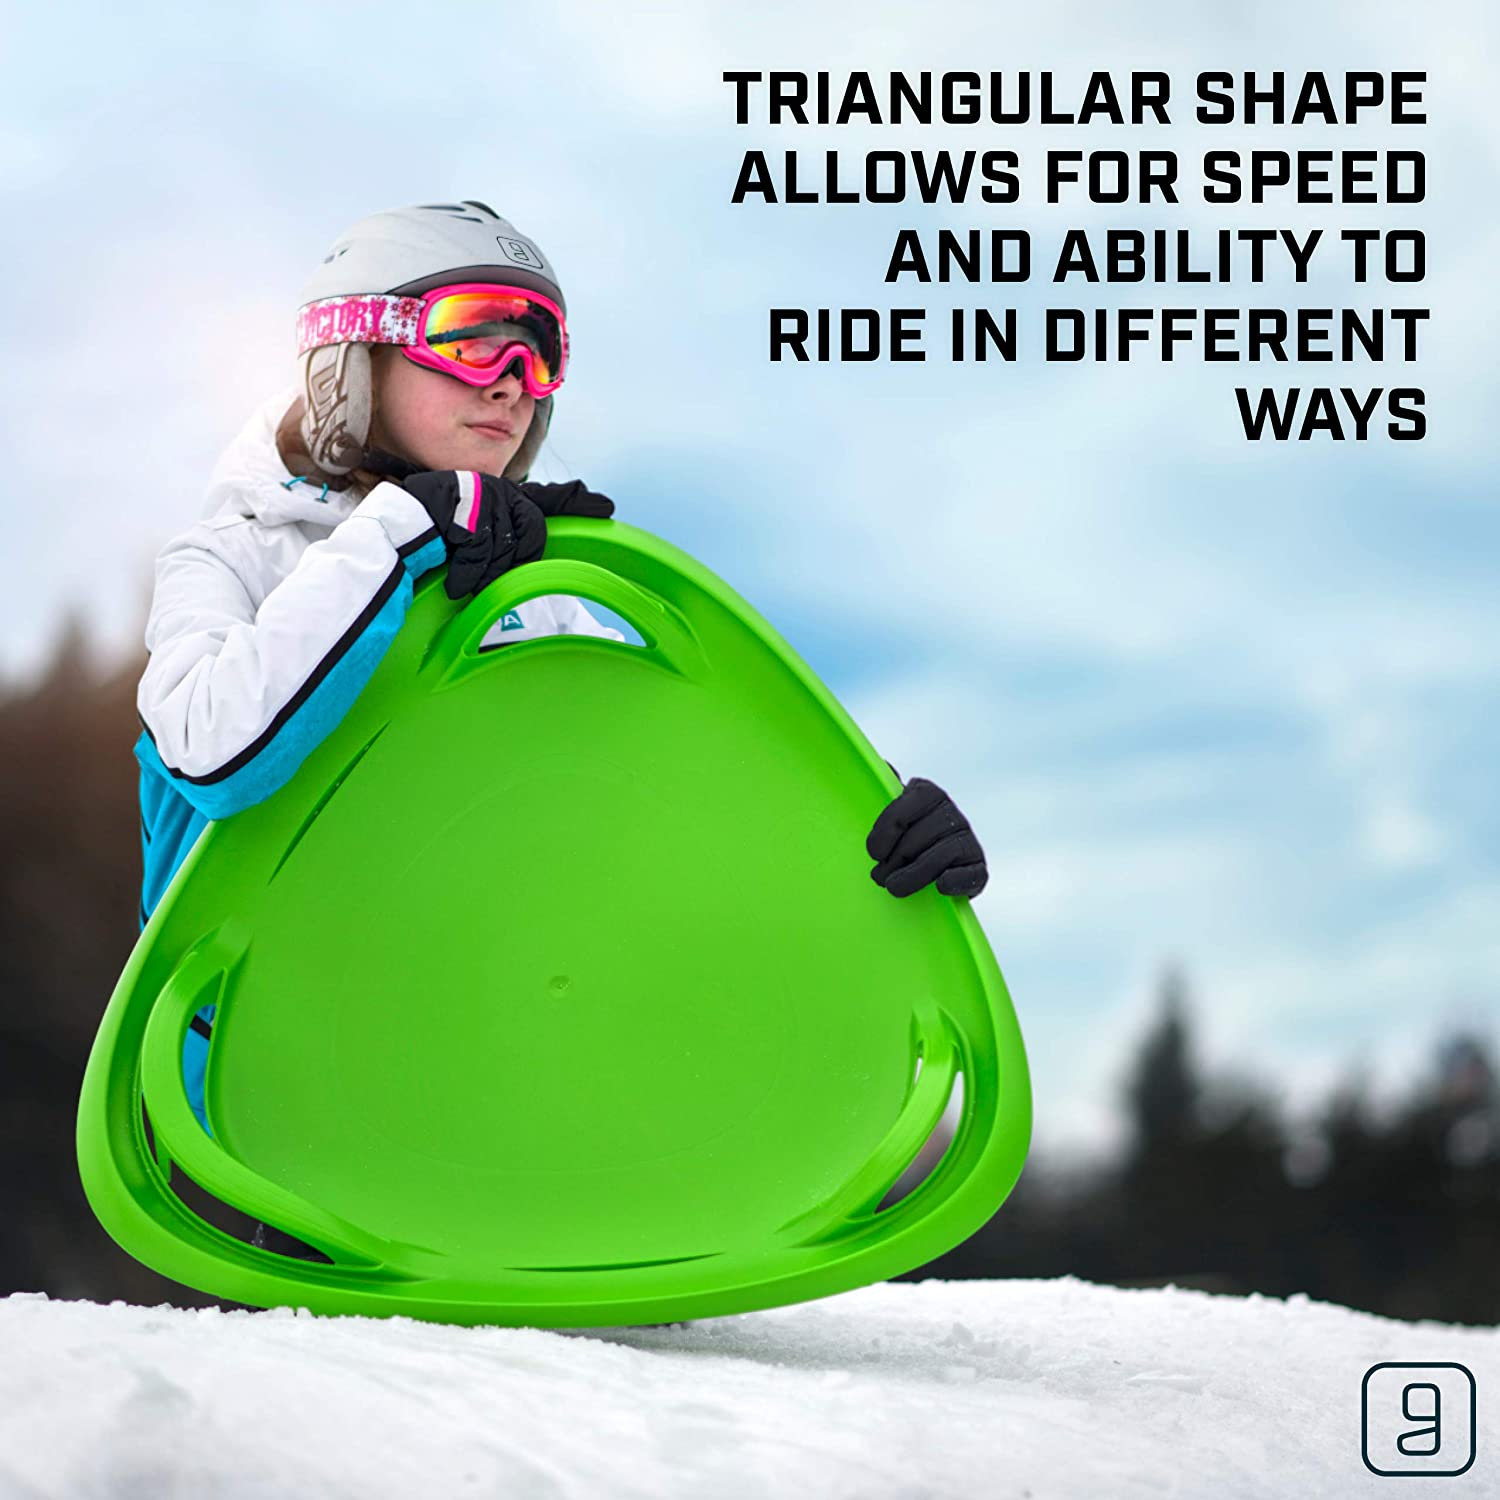 Multi-Purpose Sit or Kneel Disc Sled Saucer with Raised Safety Handles for Maximum Steering Control Sledding Disc for Kids Ages 3 and Up Gizmo Riders Meteor Saucer Sled for Kids